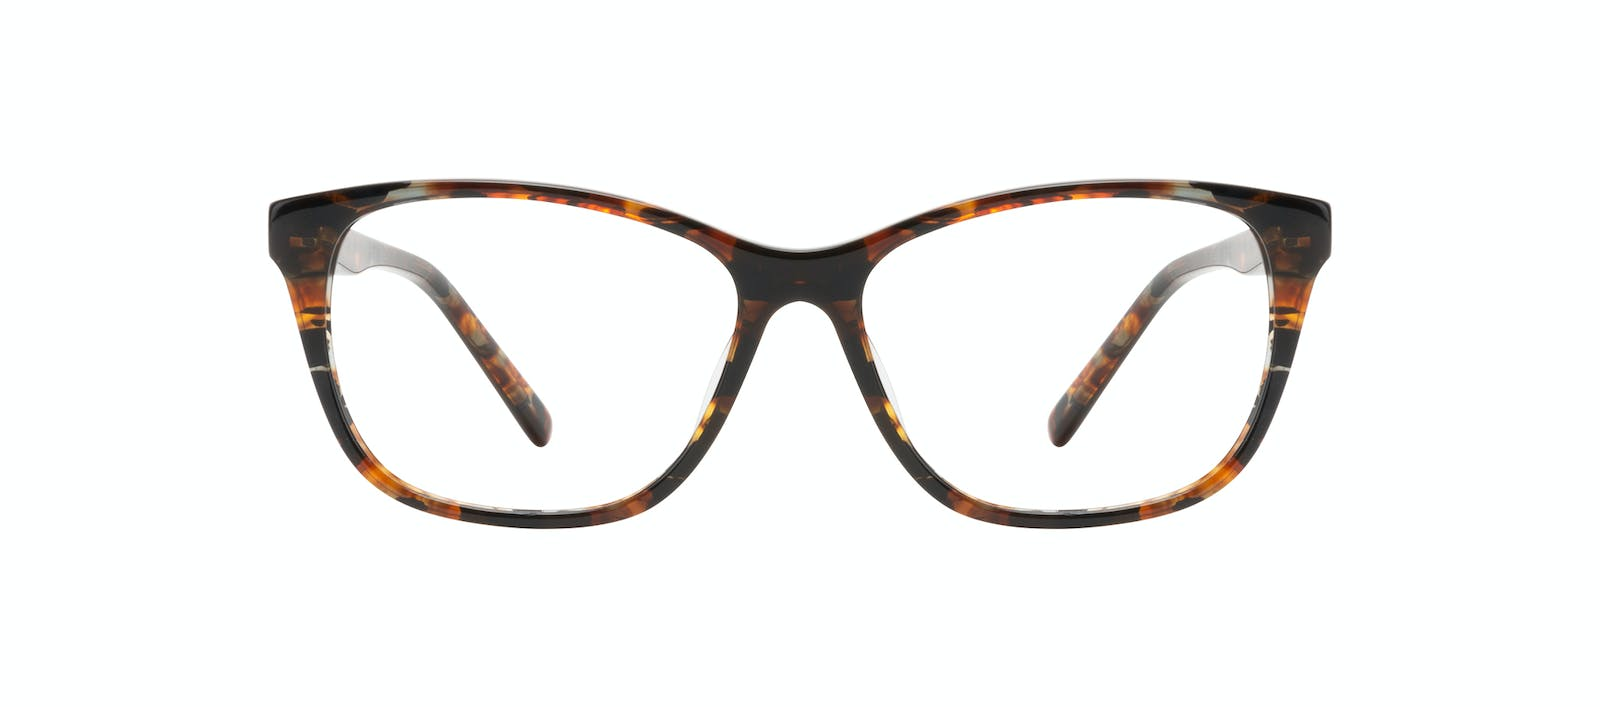 68a073e431 Affordable Fashion Glasses Cat Eye Eyeglasses Women Myrtle Petite Mahogany  Front